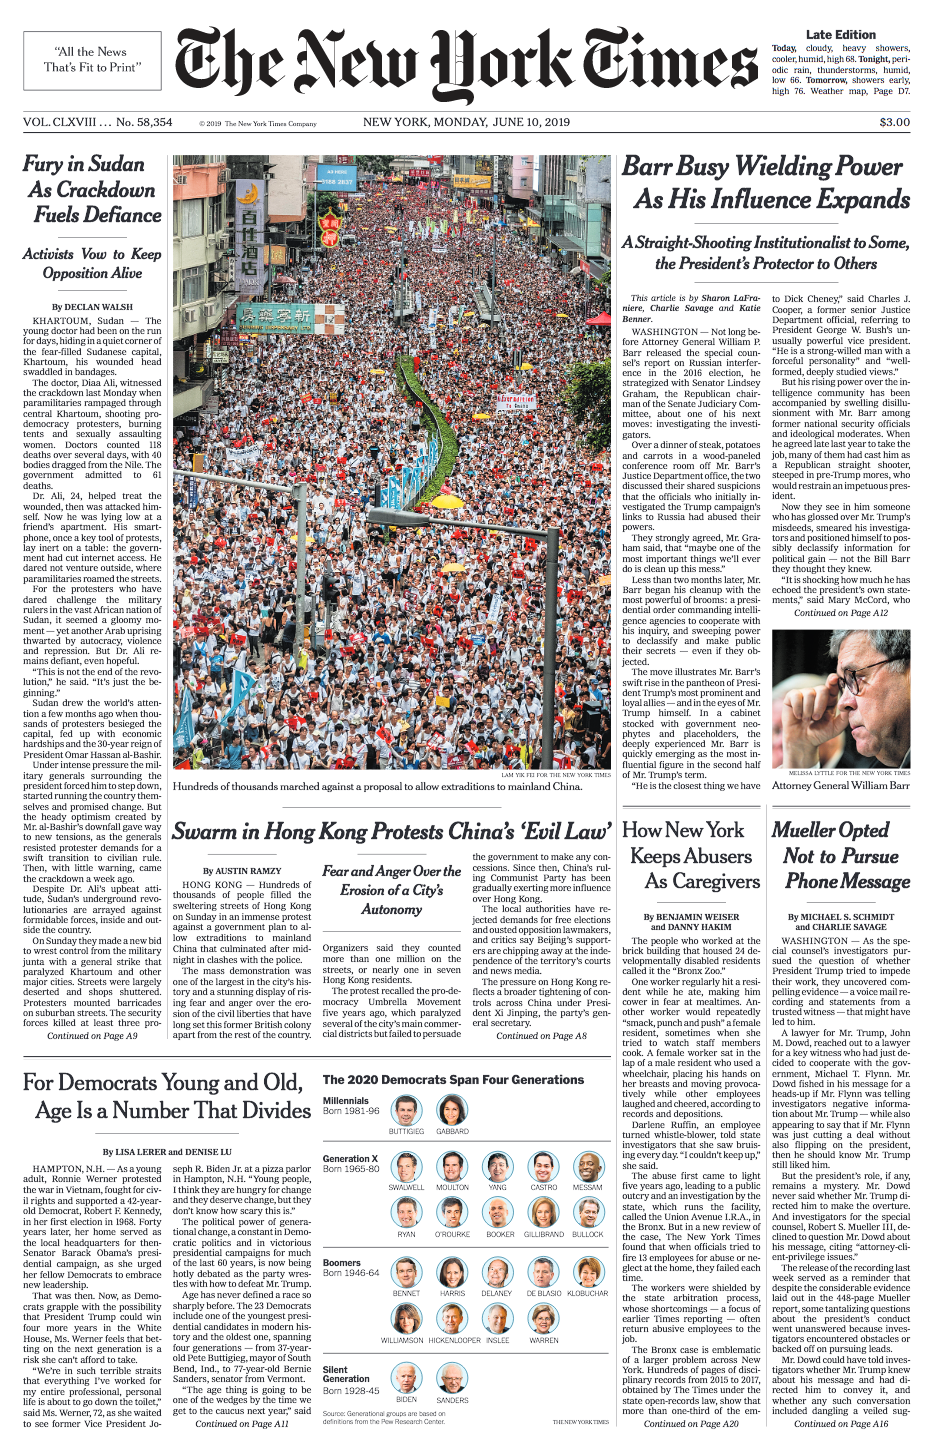 NYT_FrontPage_061019.png